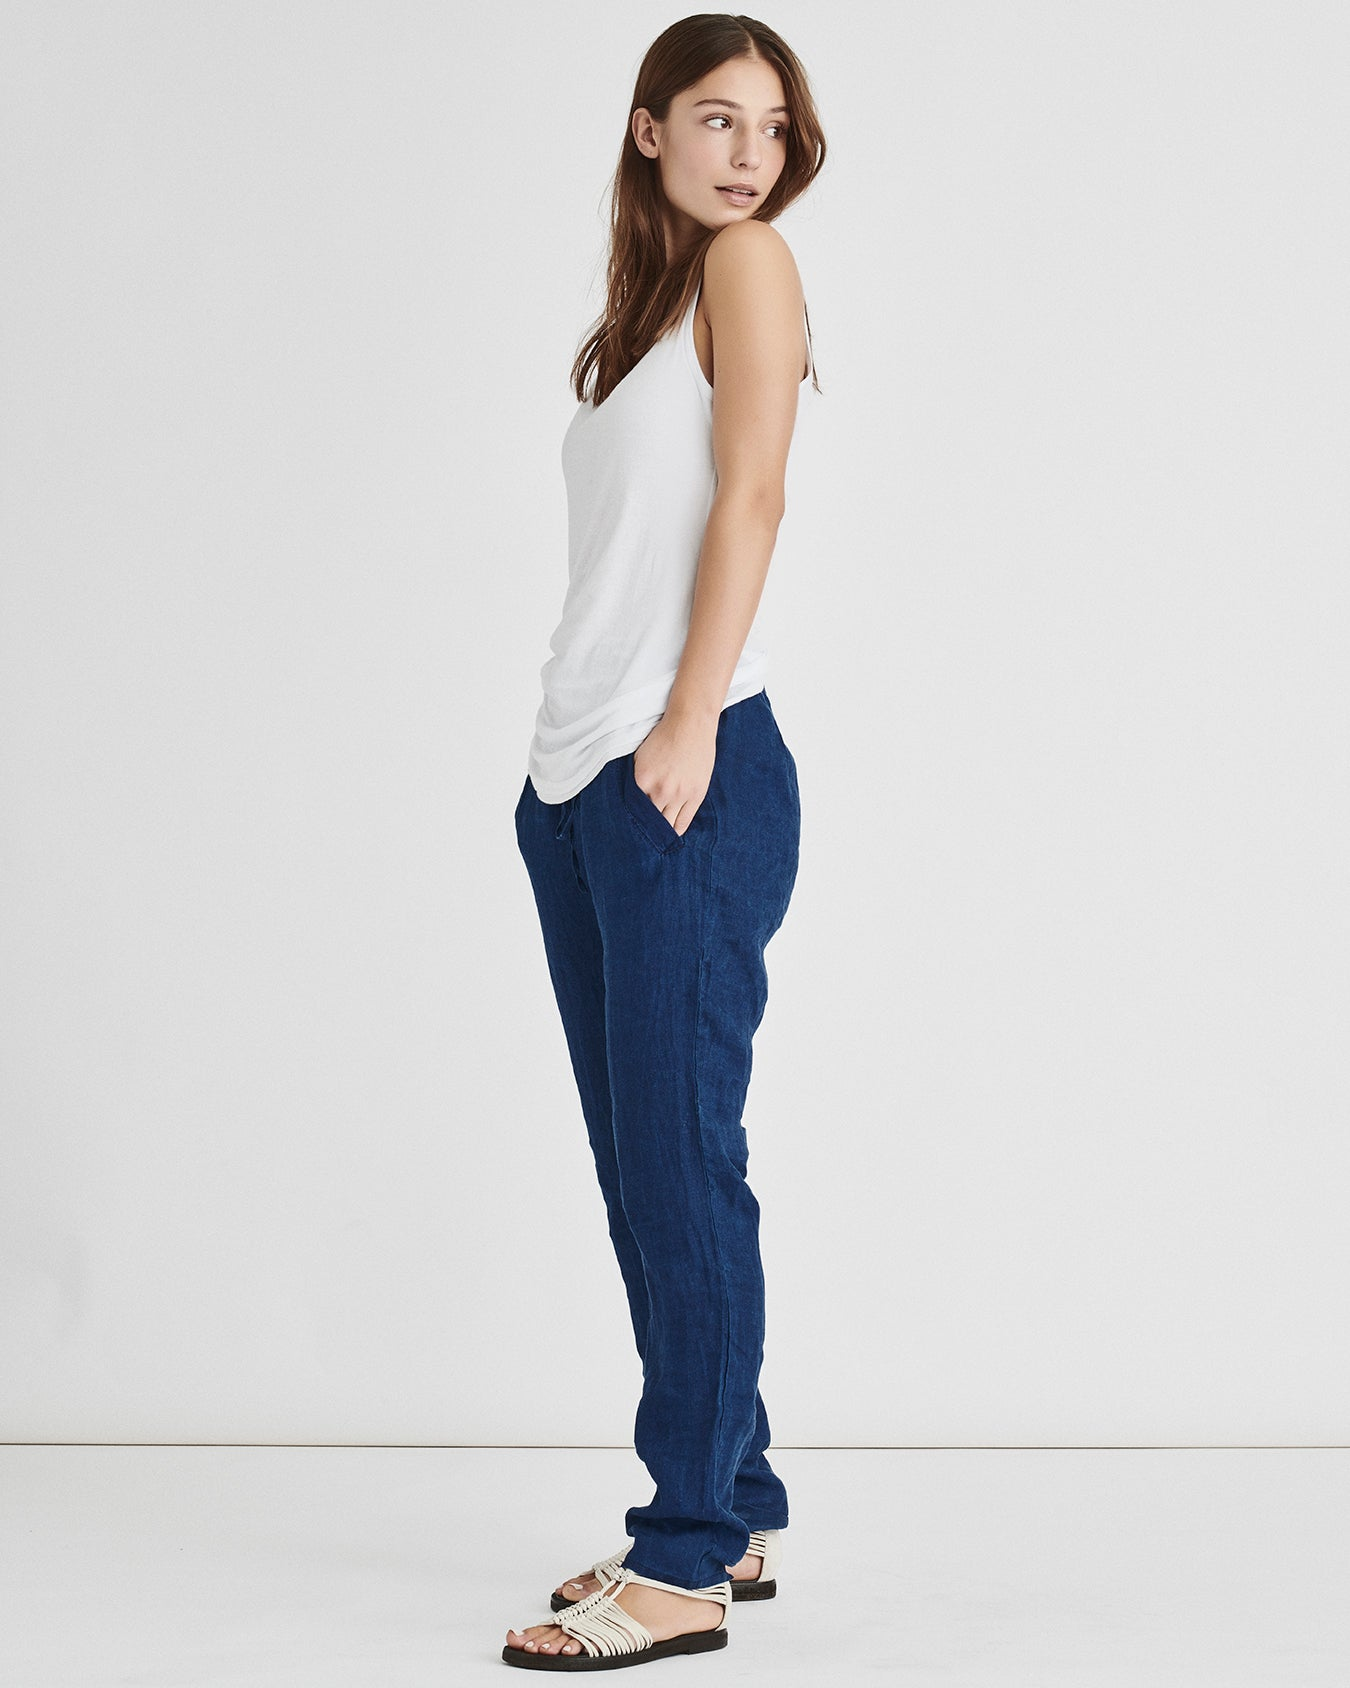 Light Linen Pants